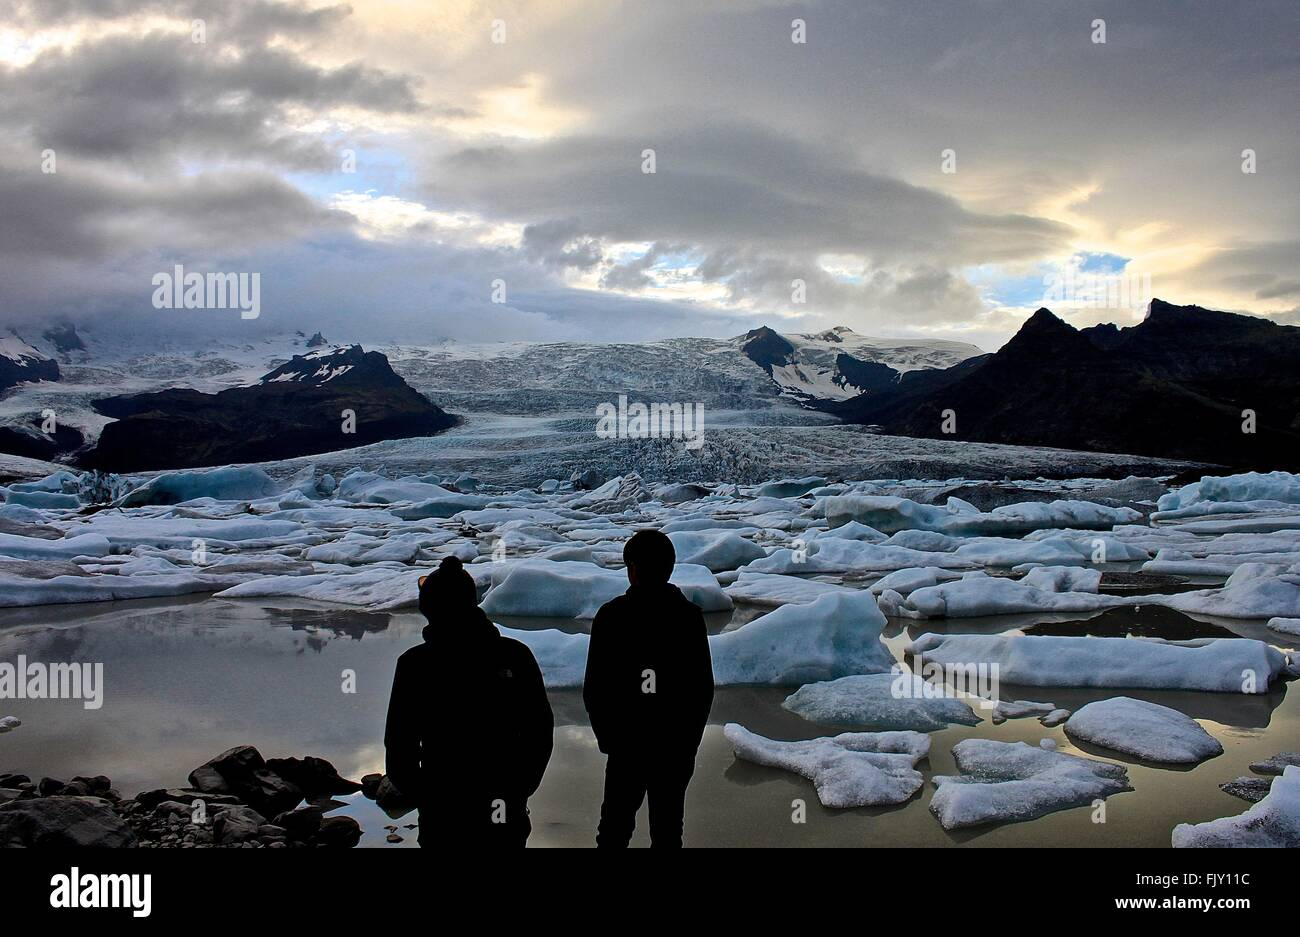 Rear View Of Silhouette Men Standing In Front Of Glaciers At Sunset - Stock Image